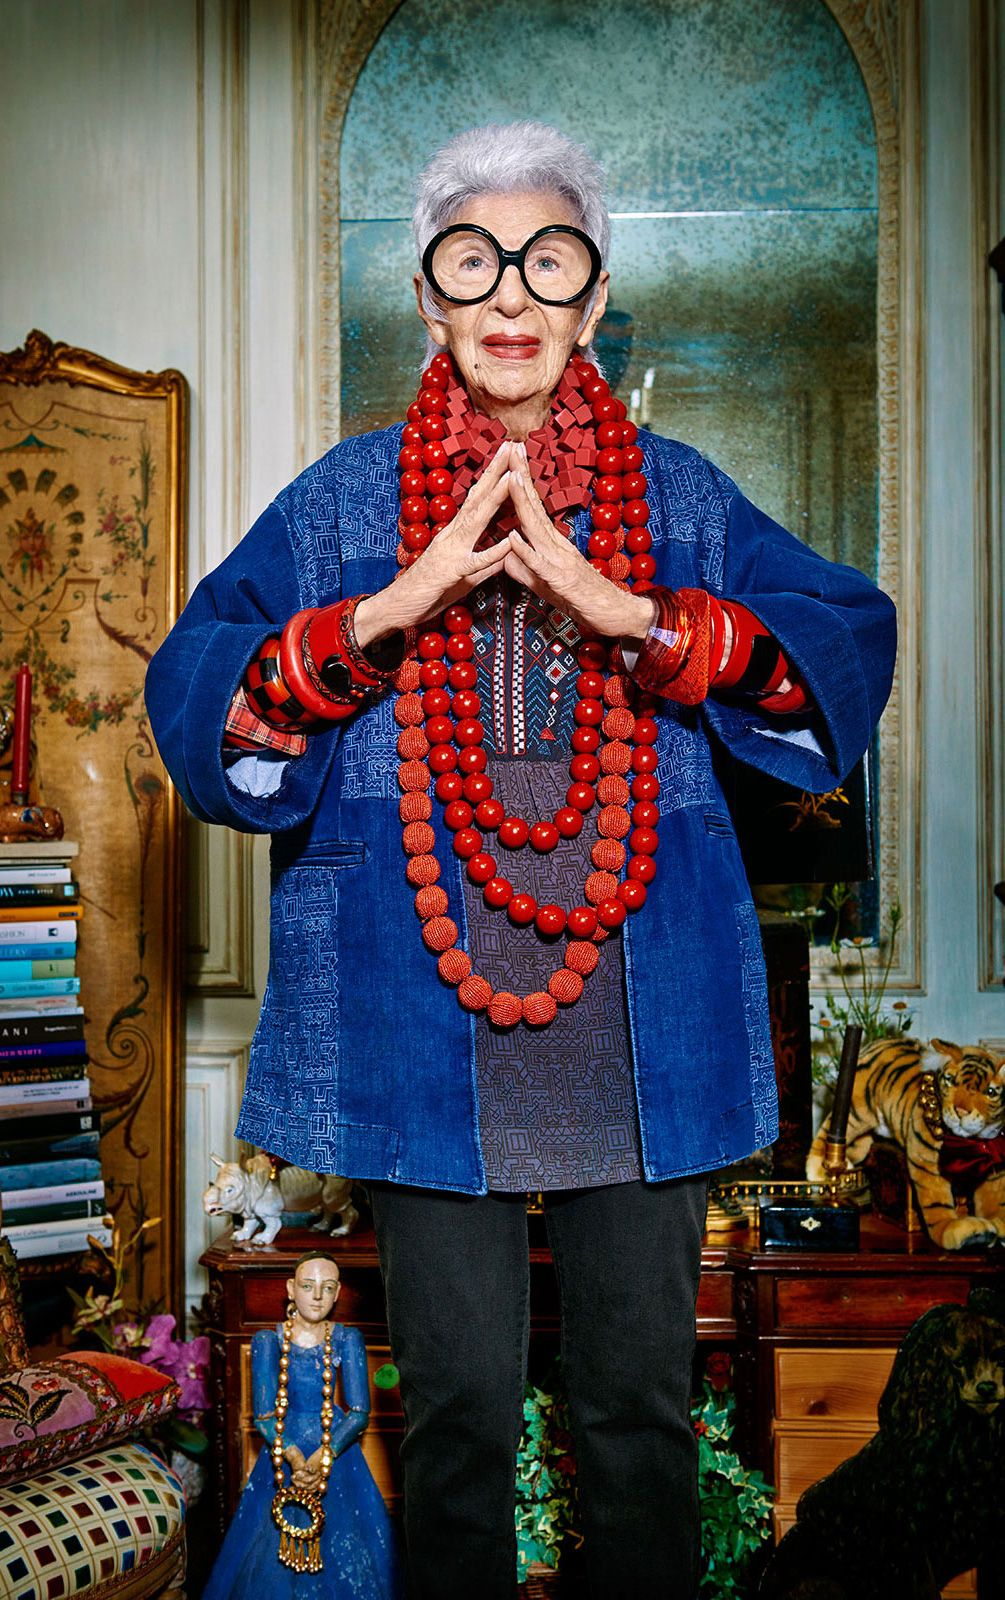 94-Year-Old Iris Apfel Is Cooler Than You ll Ever Be, as the New Face of  Two Brands 3953059fc0f